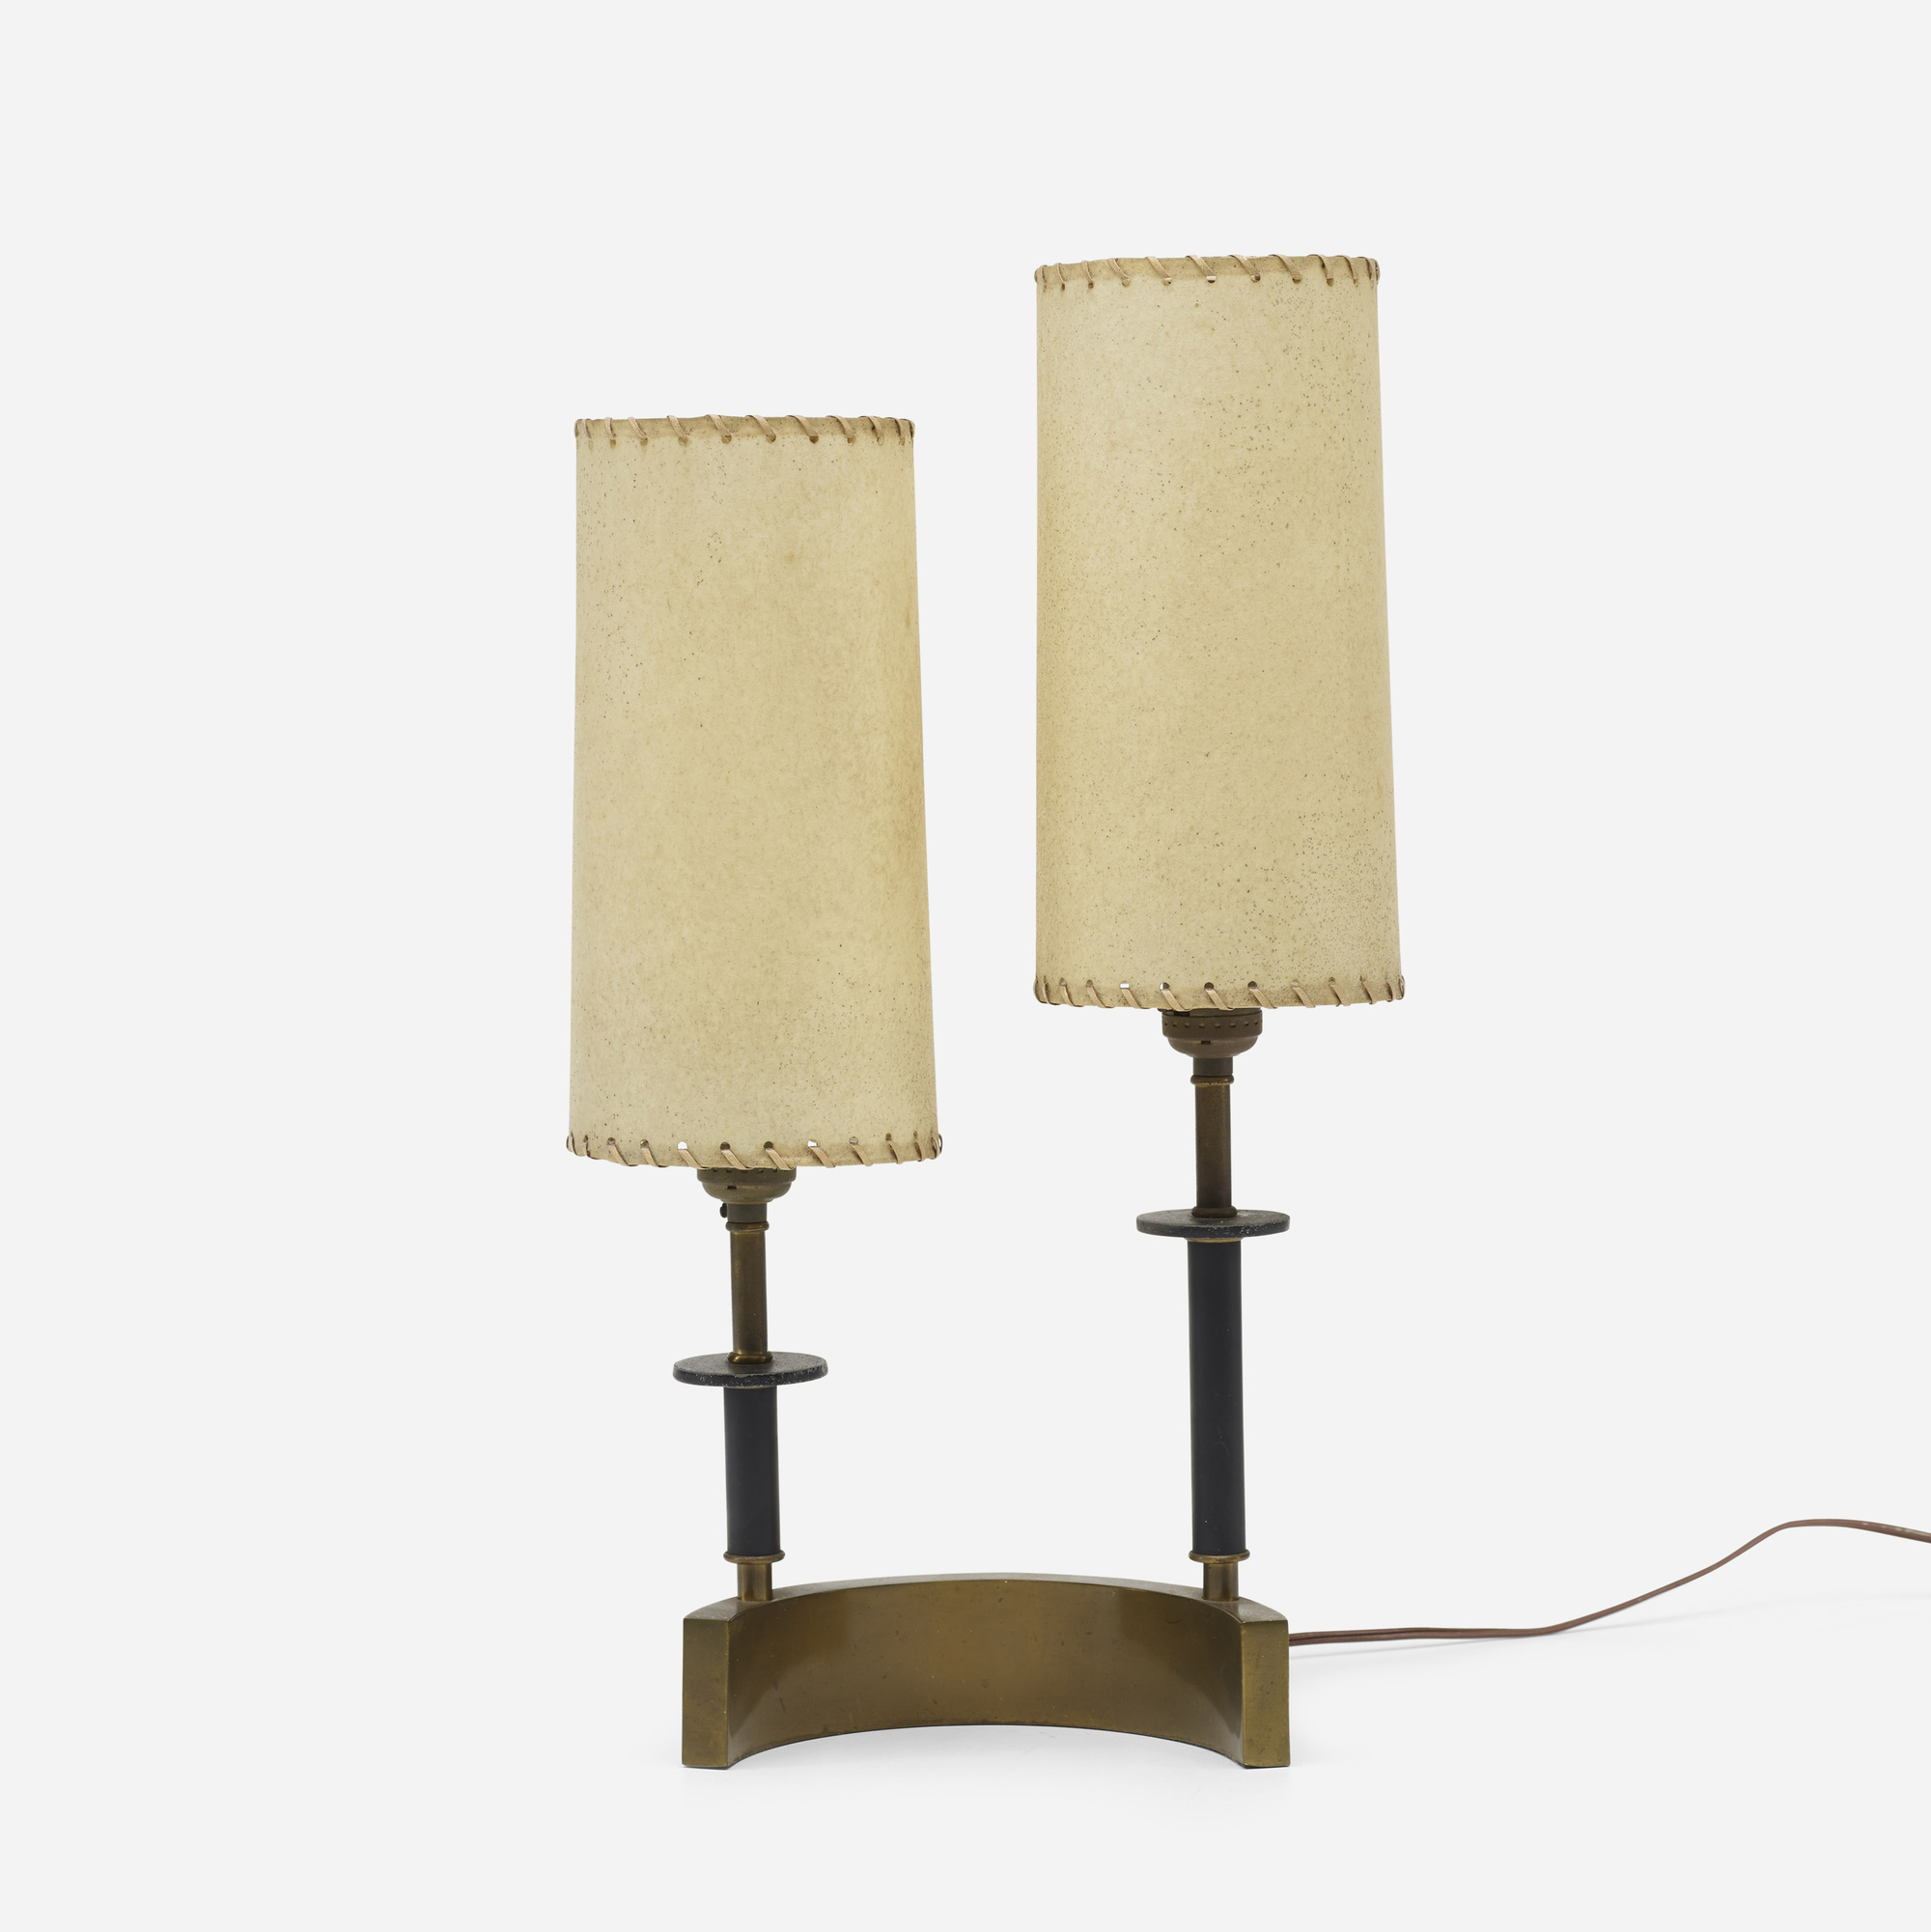 610: Modernist / table lamp (1 of 1)